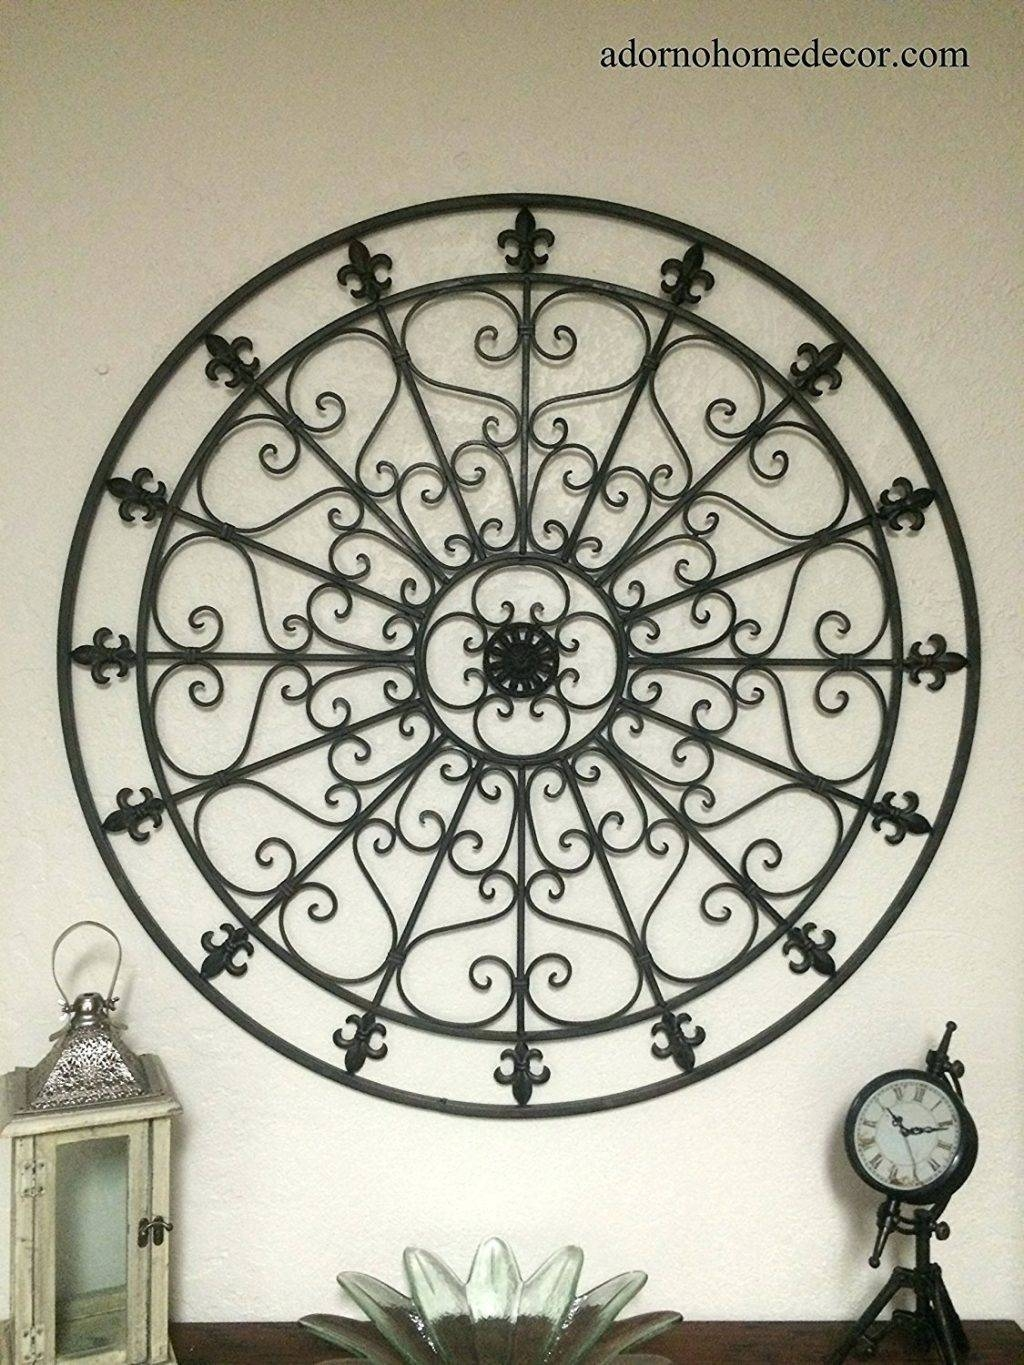 Wall Arts ~ Metal Fleur De Lis Wall Art Tuscan Fleur De Lis Within Latest Large Round Metal Wall Art (View 15 of 20)